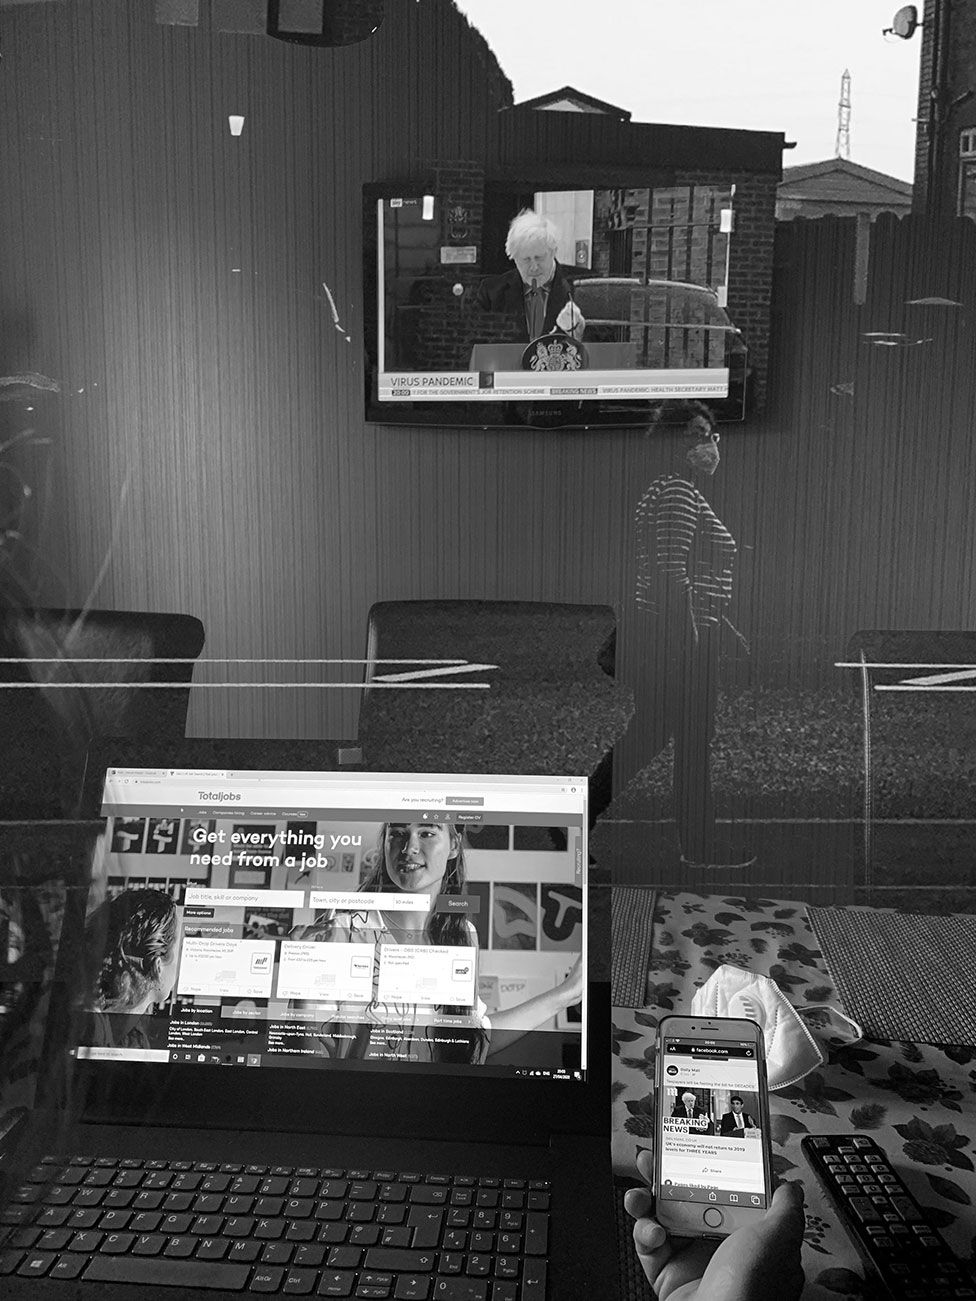 A black-and-white montage of a laptop, phone, television and woman walking past wearing a face mask